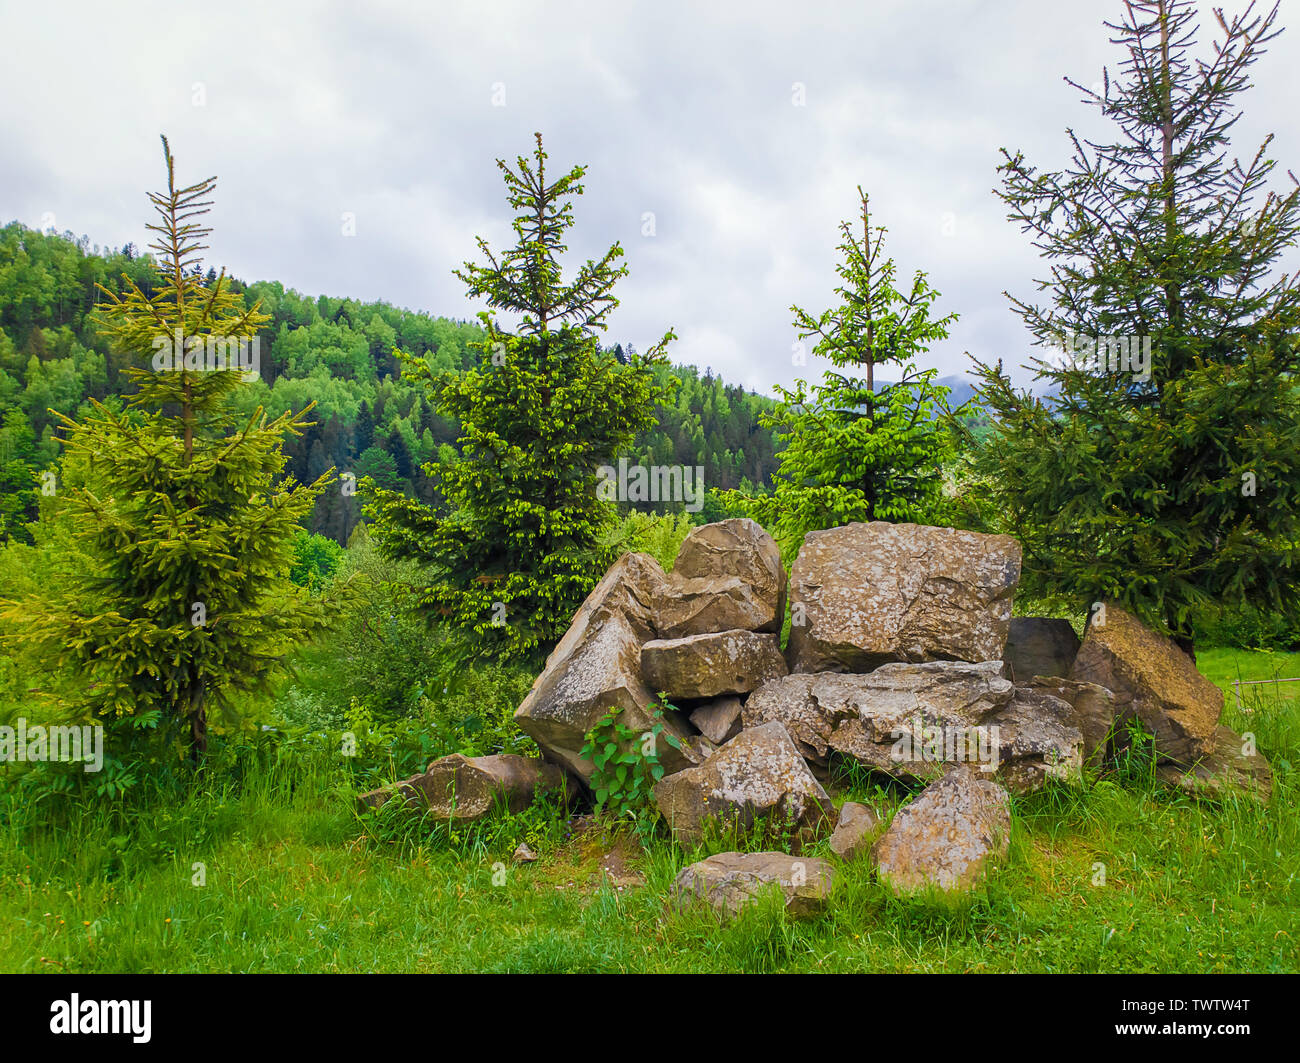 Beautiful spring day in the carpathian mountains with coniferous forest on the top of the hills. Natural landscape, fir trees and a pile of stones. Di - Stock Image